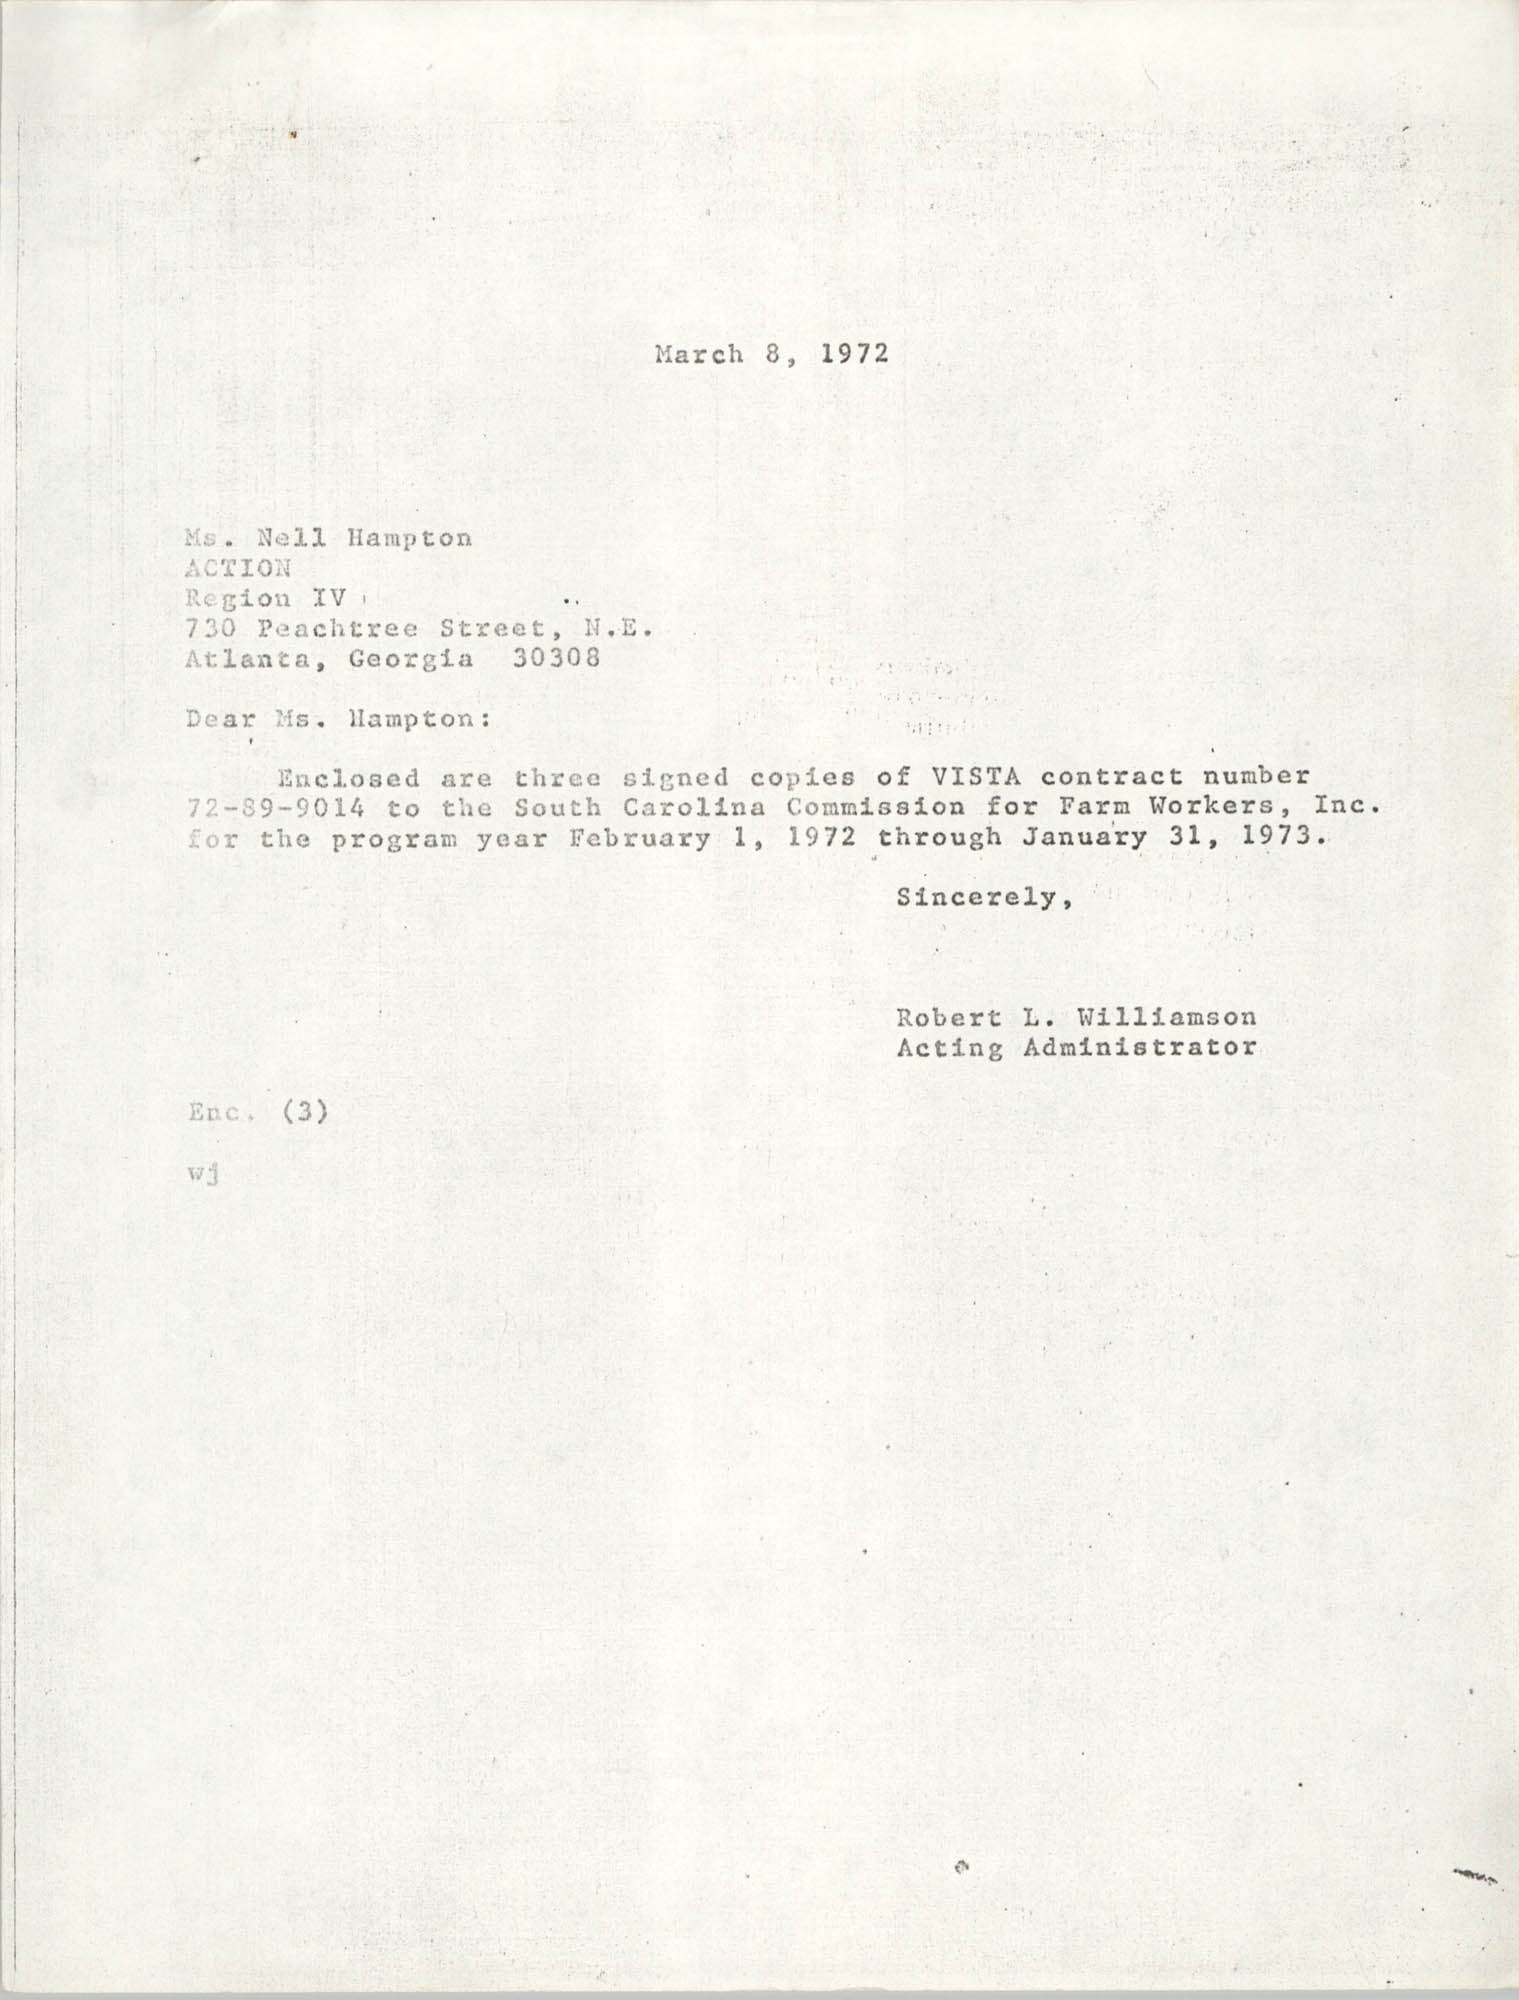 Letter from Robert L. Williamson to Nell Hampton, March 8, 1972